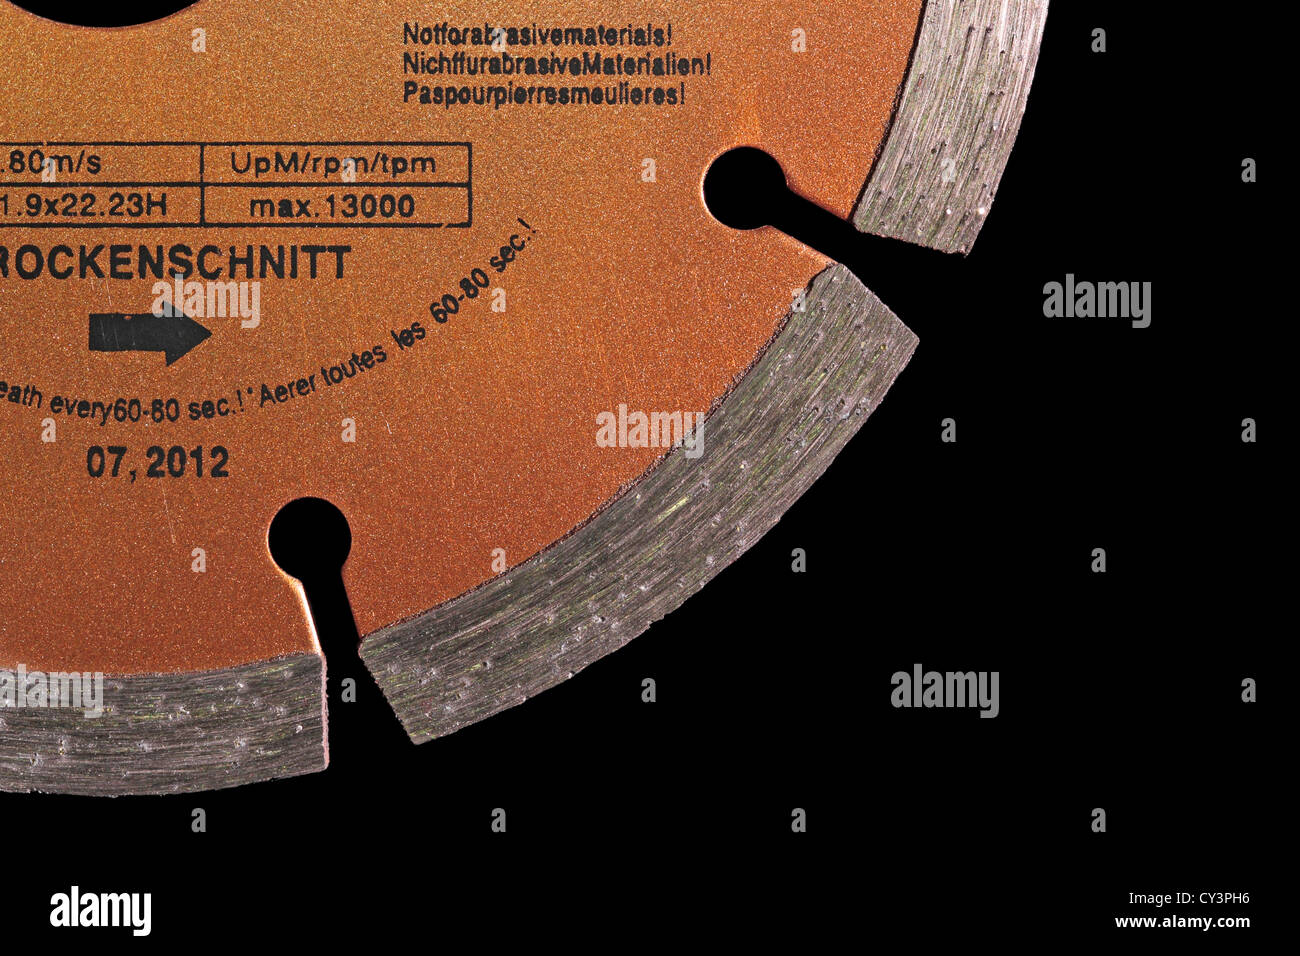 Diamond Grit Cutting Wheel - Cutting Disc - isolated on a black background - Stock Image